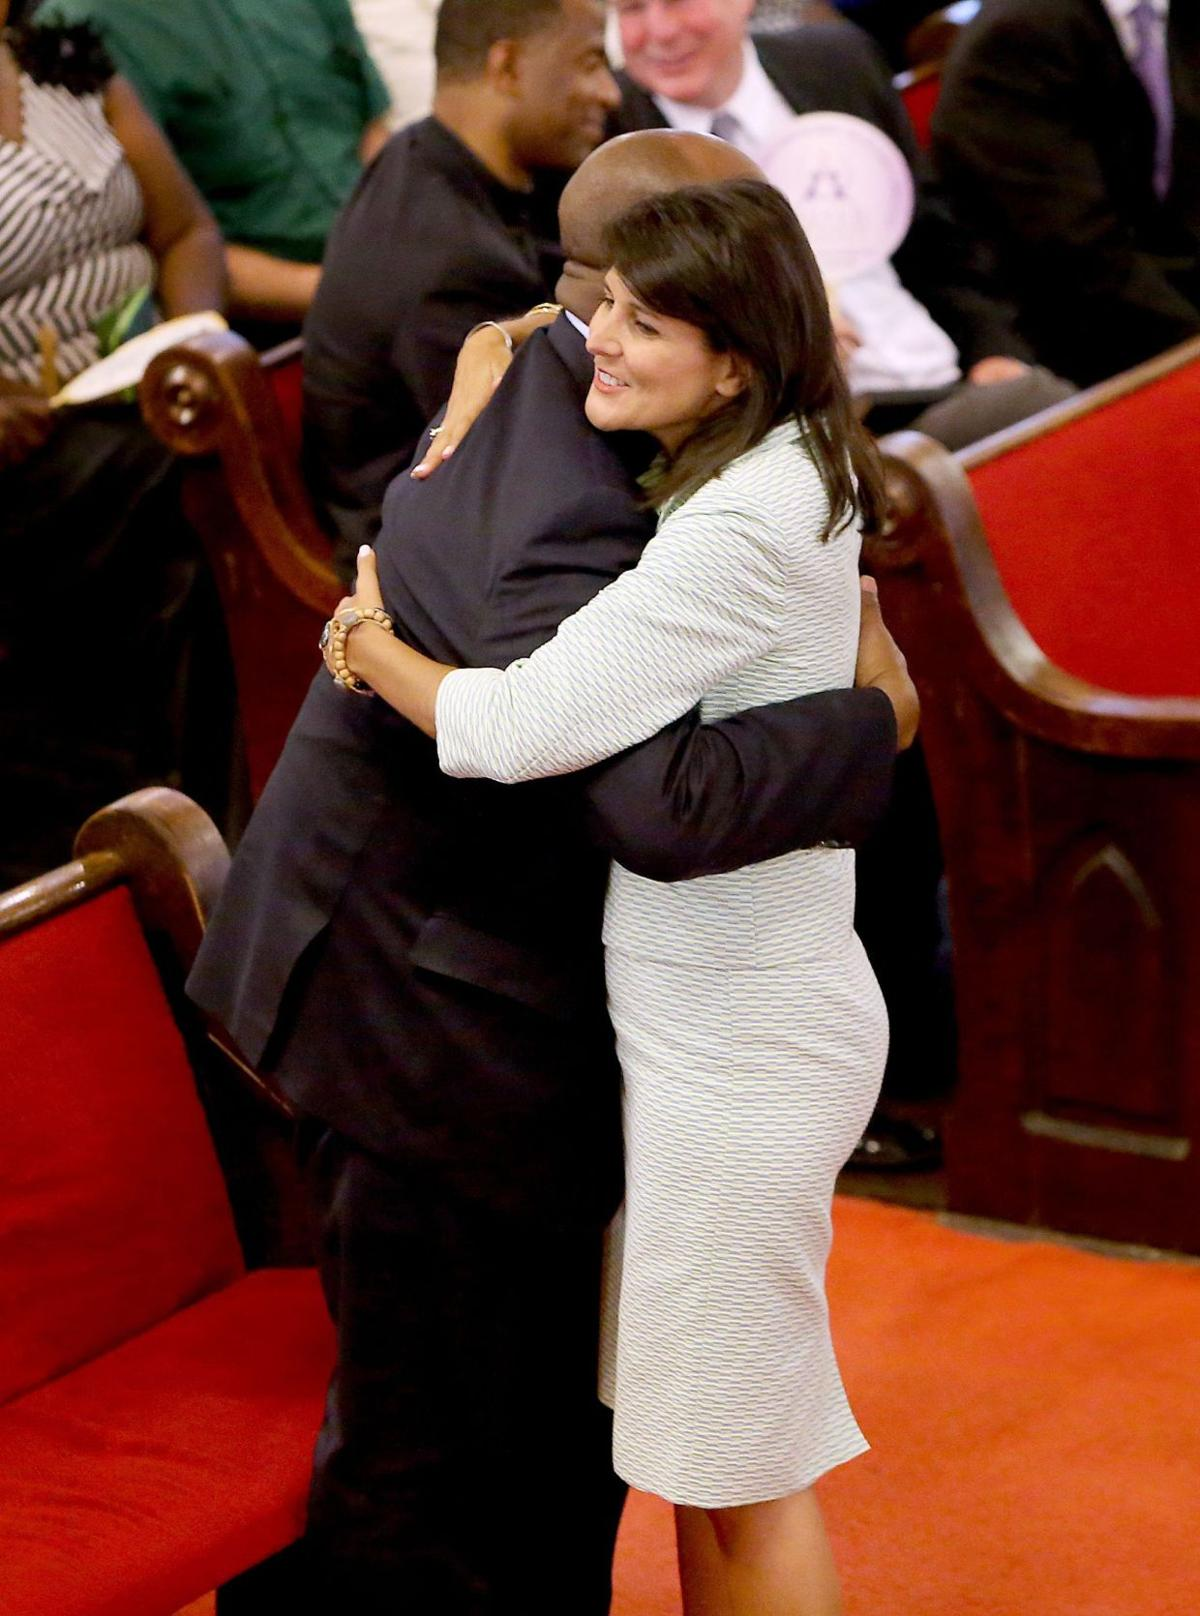 As the legislature returns to tackle the Confederate Flag, Haley reflects on her decision to call for its removal